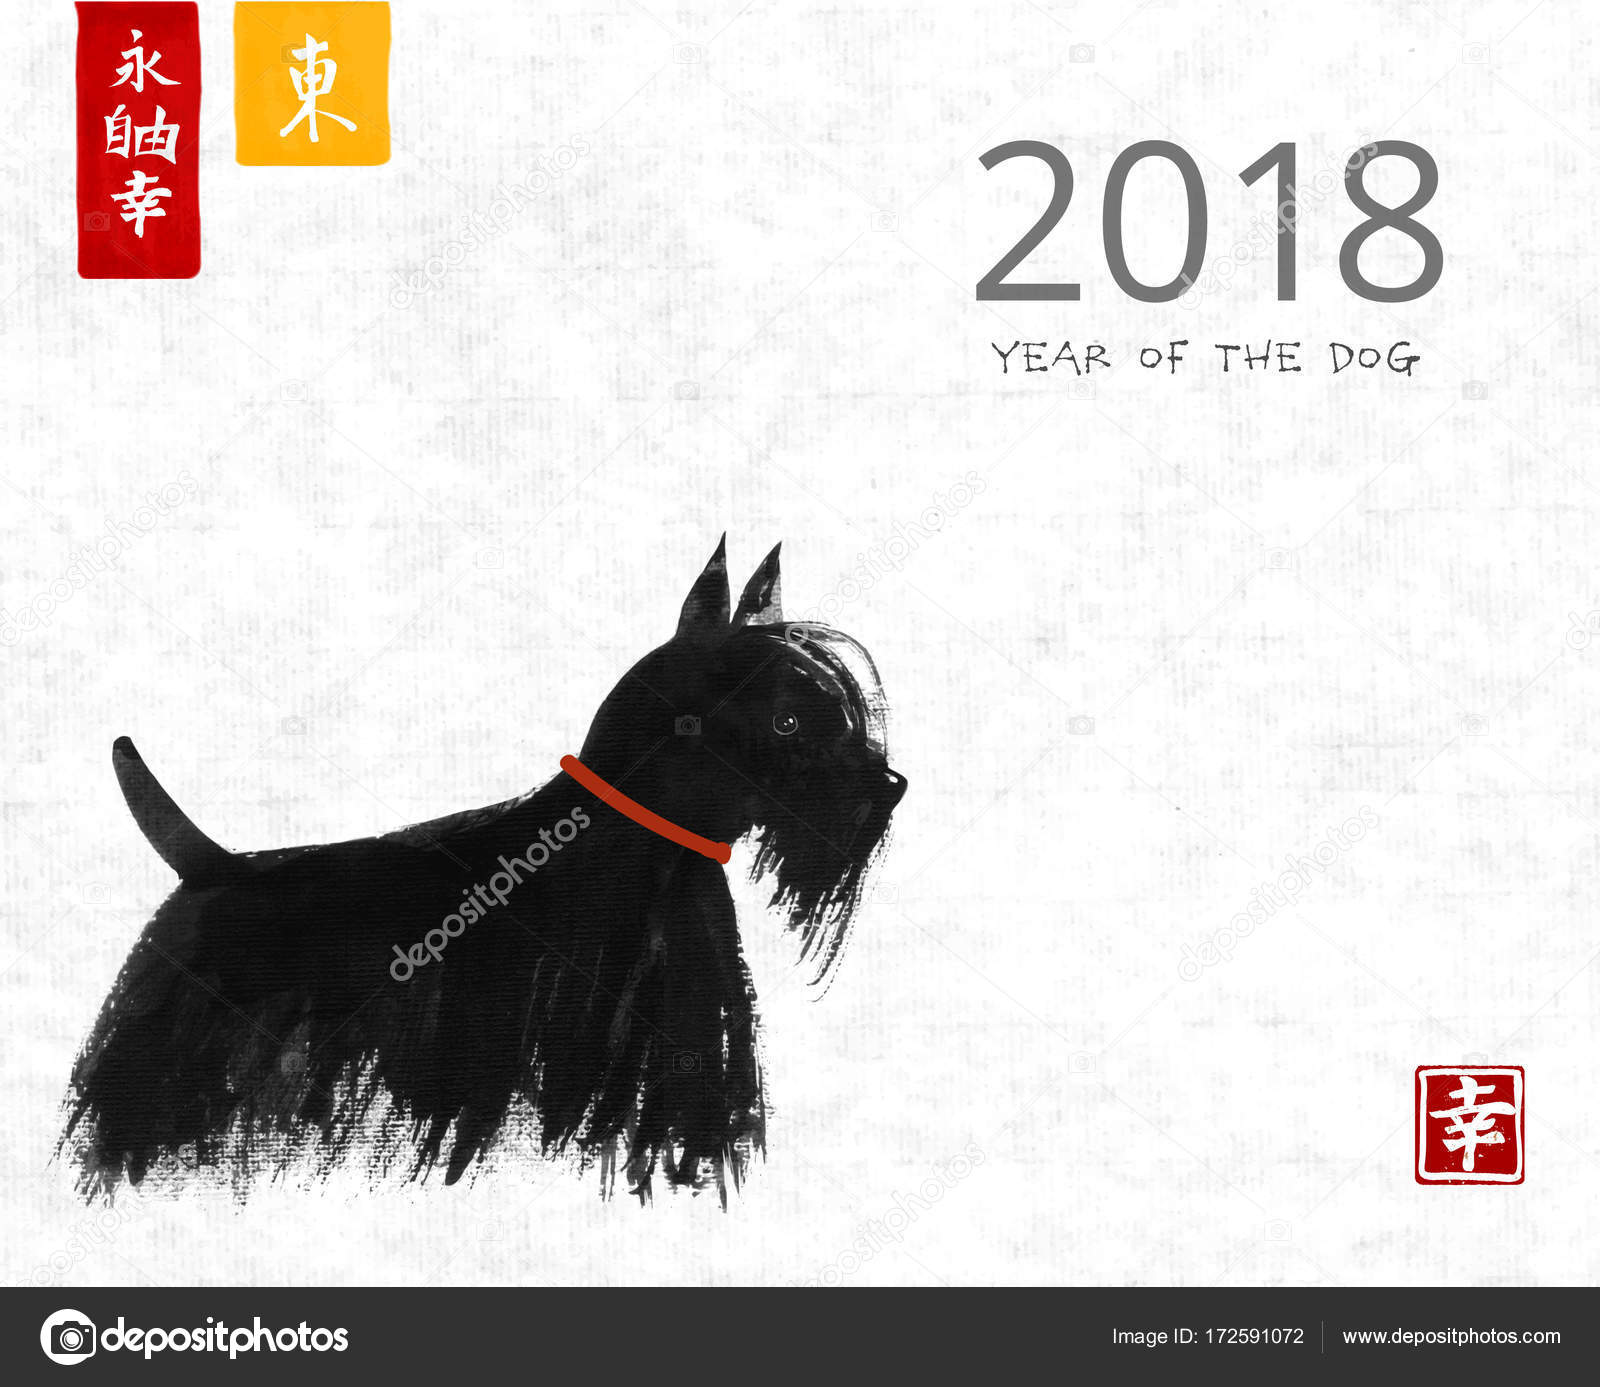 Chinese new year greeting card stock vector elinacious 172591072 chinese new year greeting card with a dog hand drawn with ink in asian style on rice paper vector by elinacious m4hsunfo